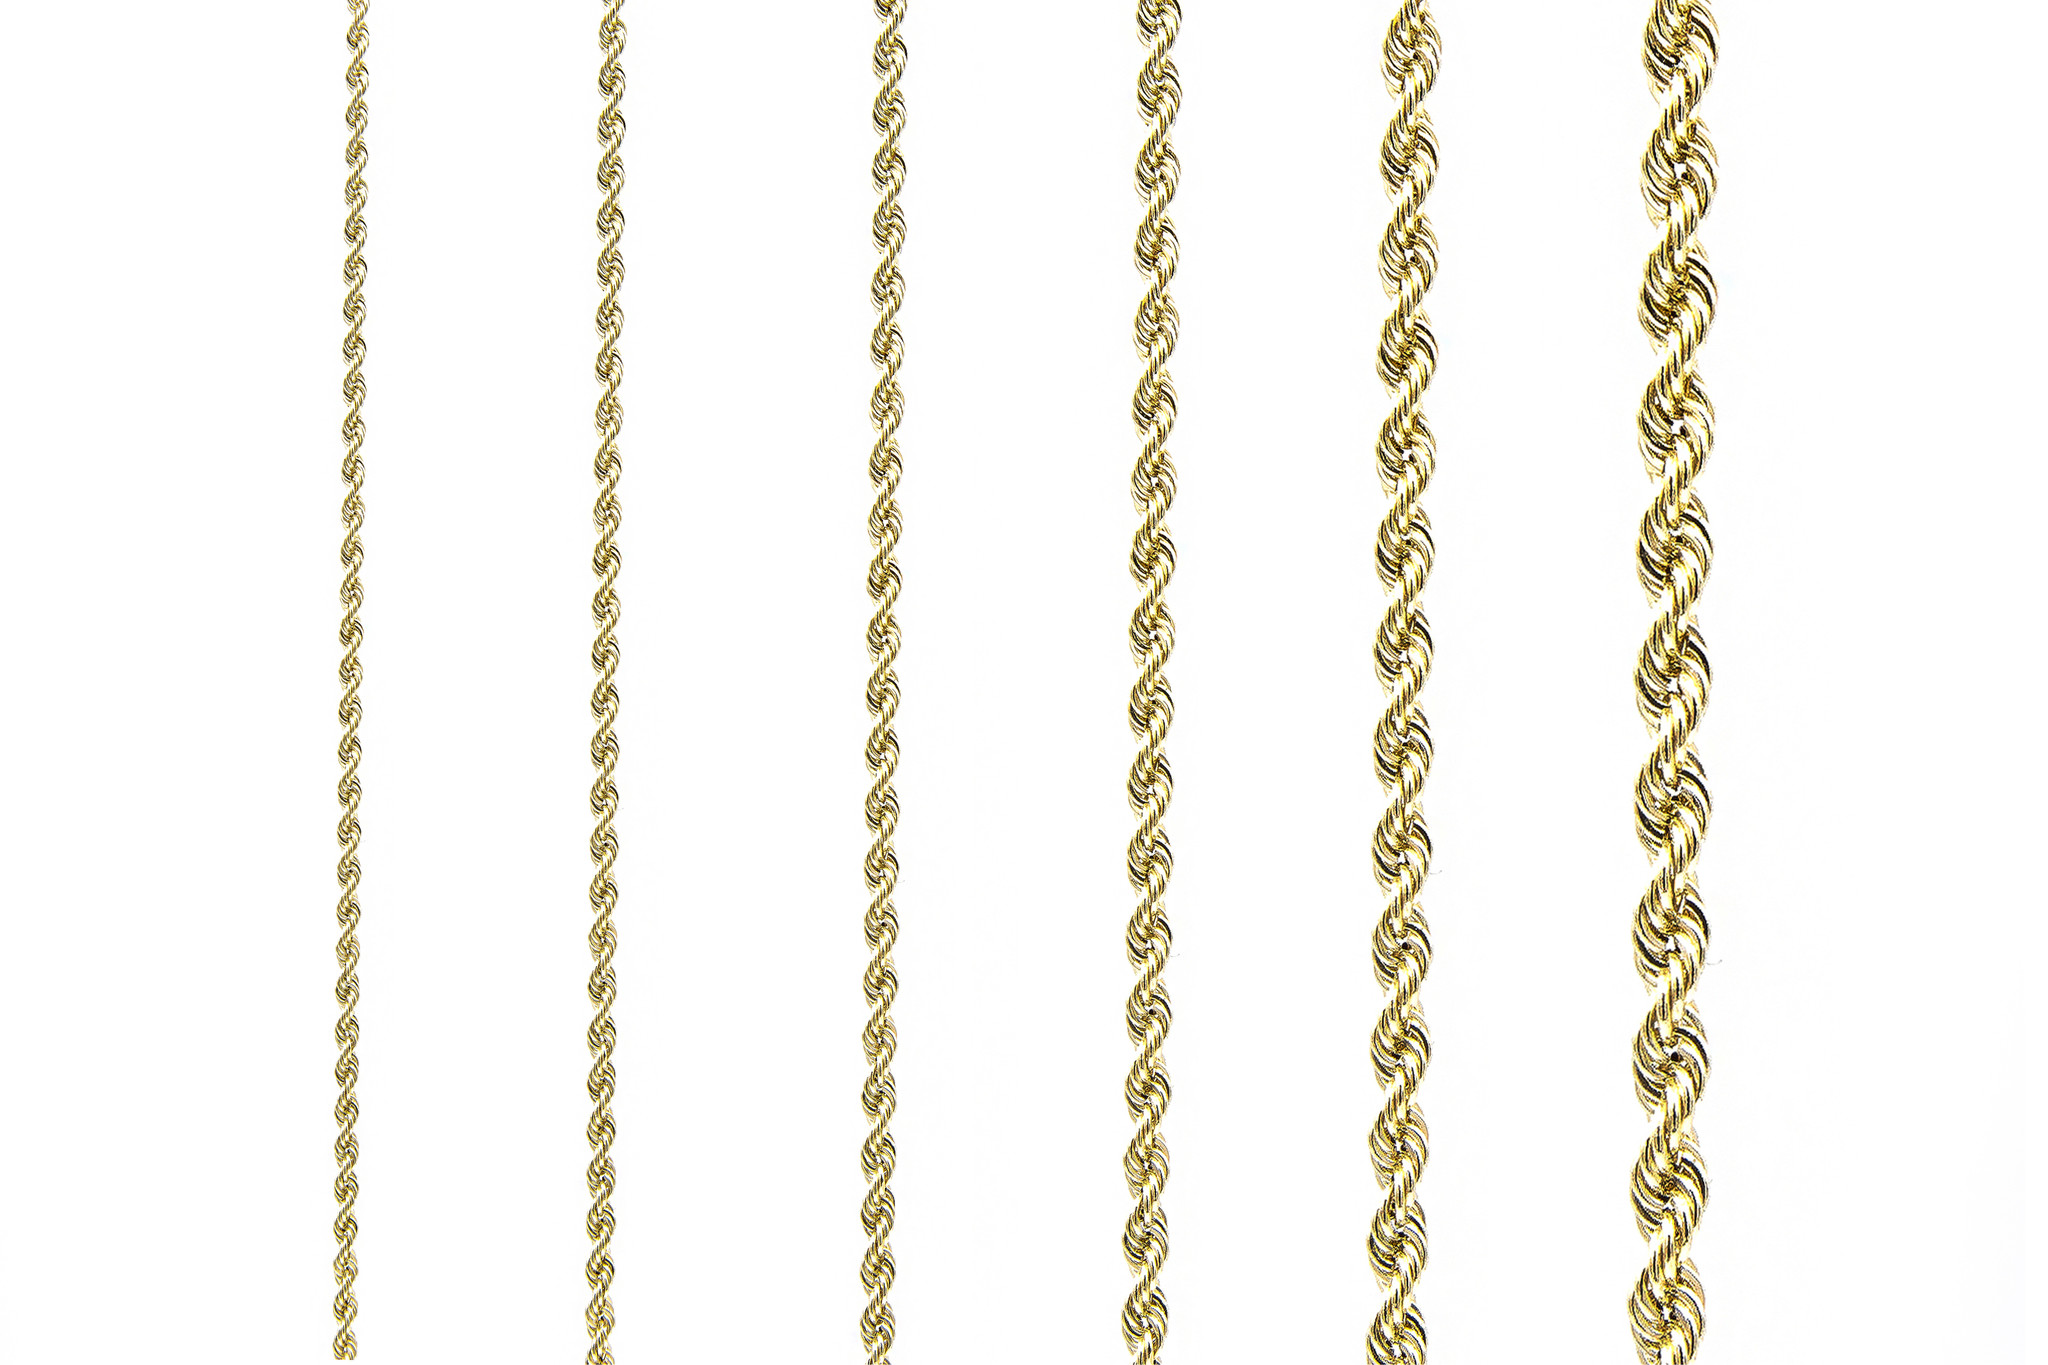 Rope Chain 18k-3.5 mm-3